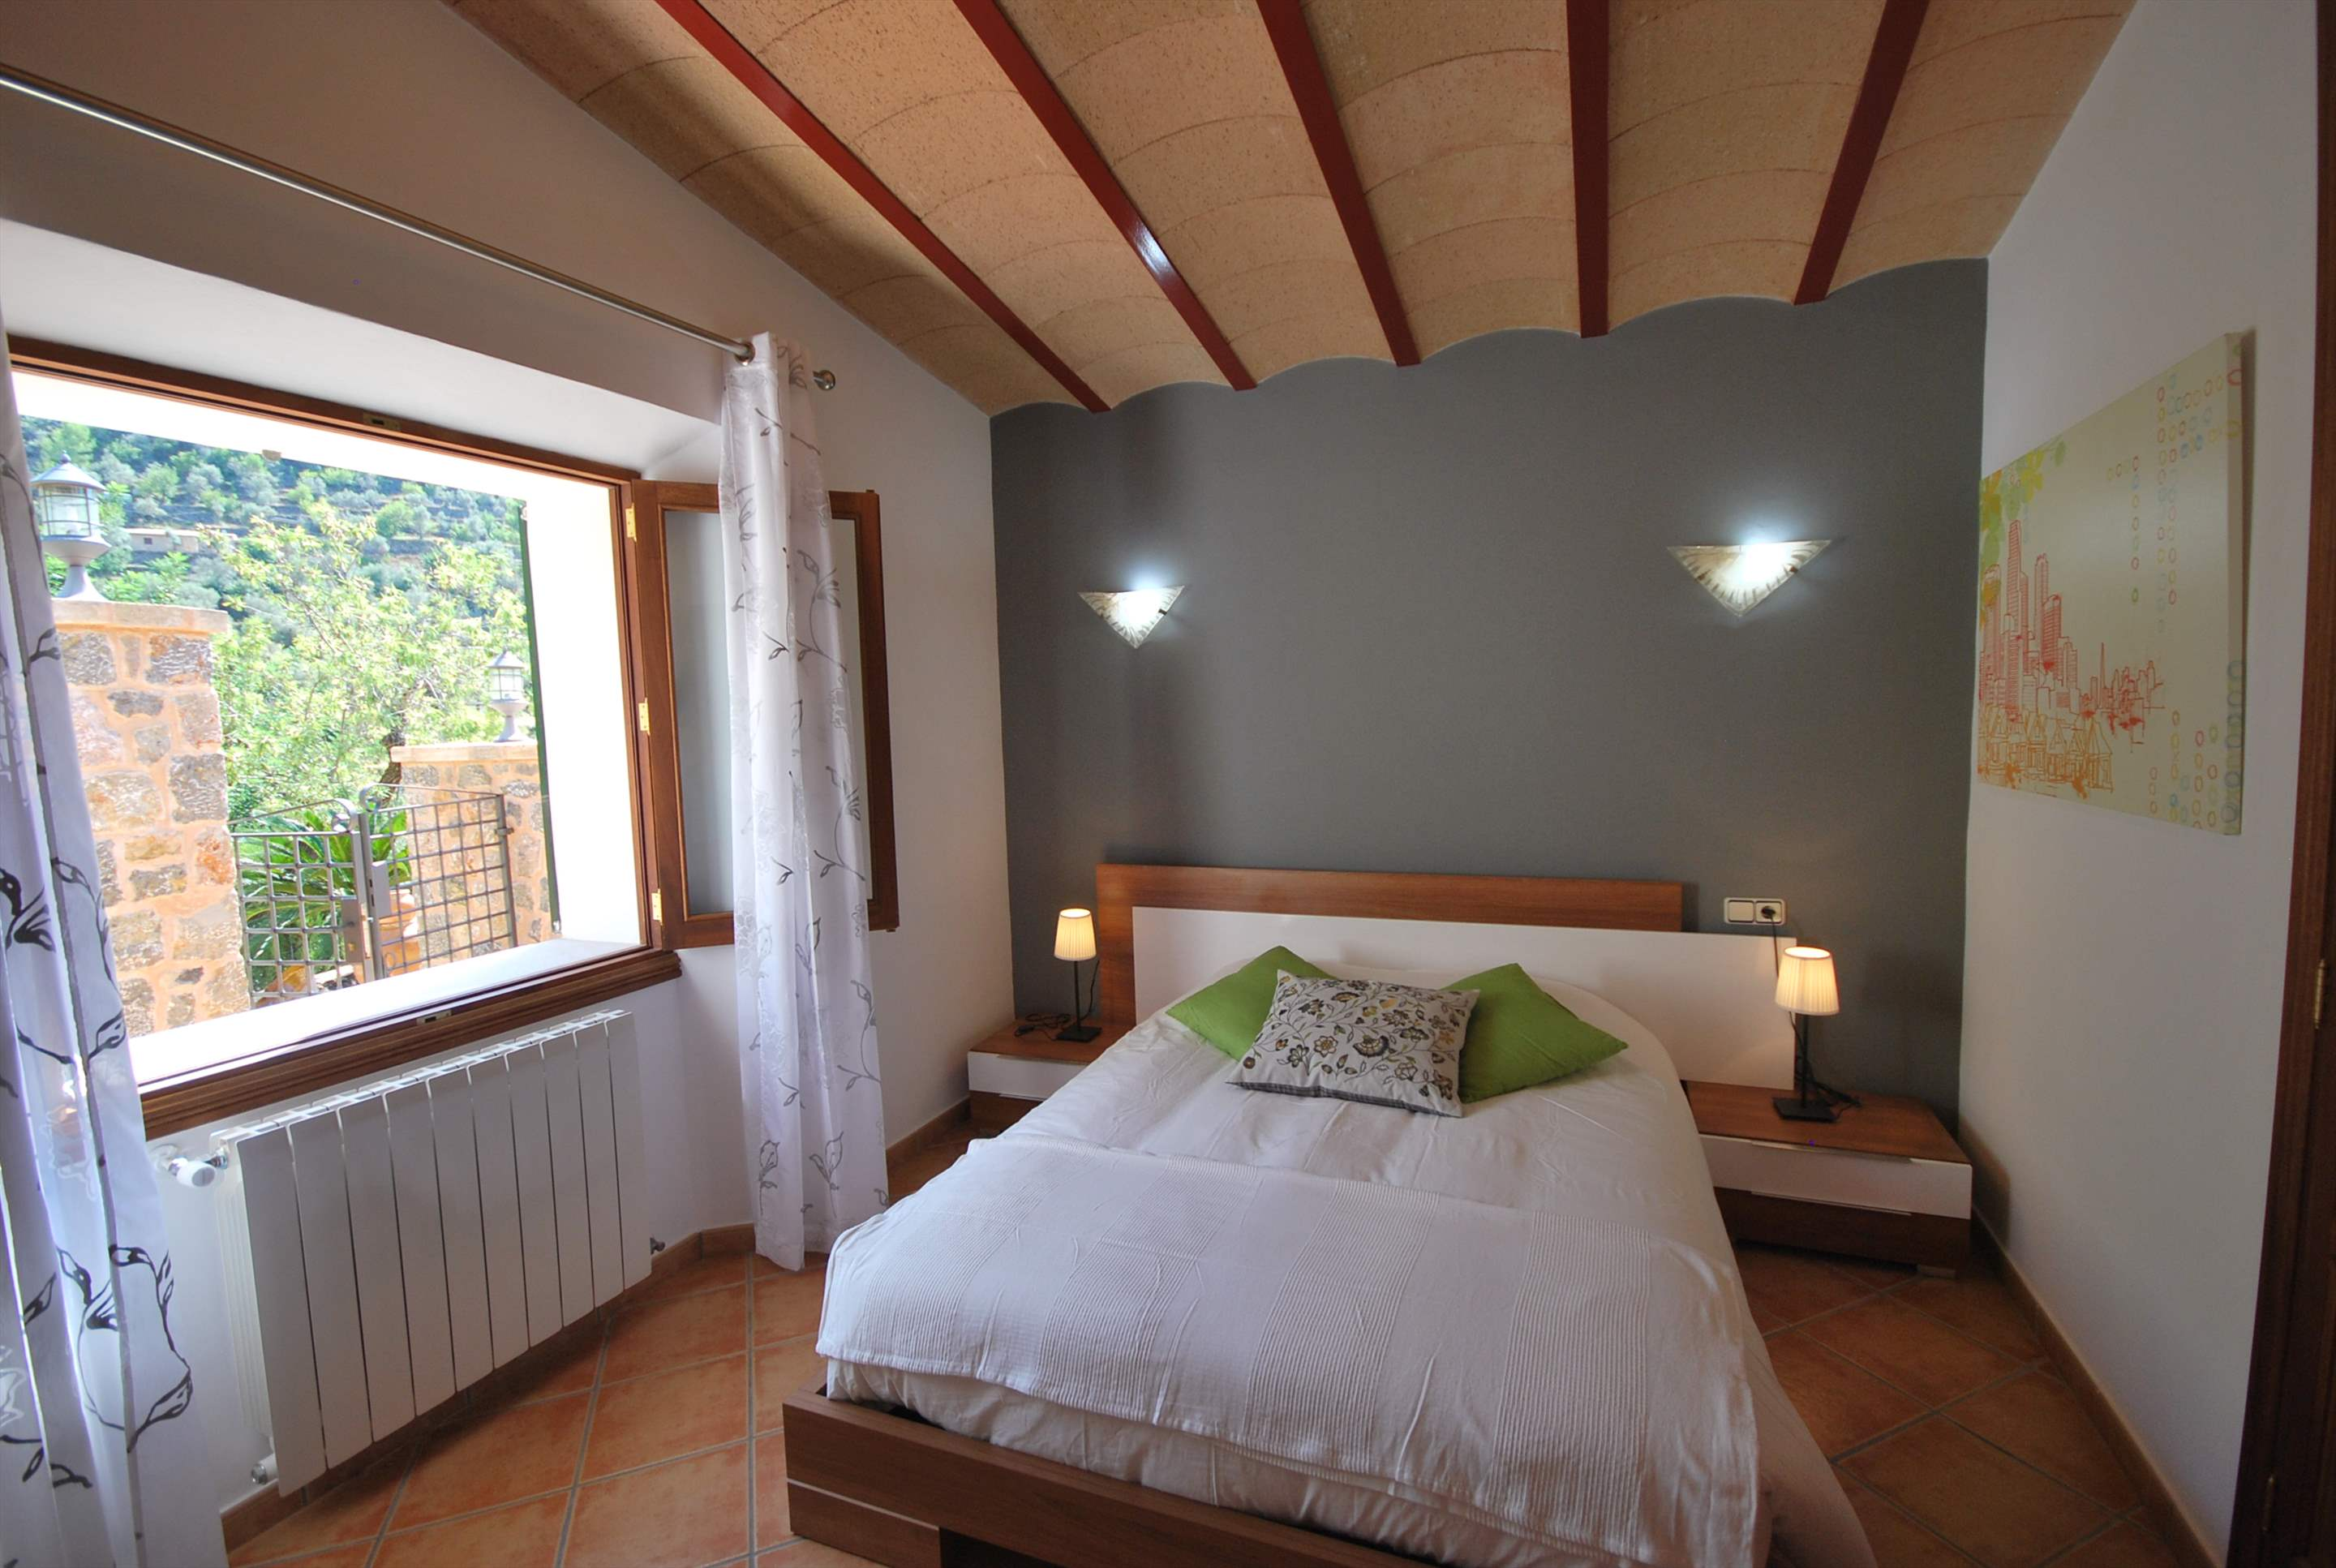 Casa Tres Cruces - SO1797, 3 bedroom villa in Soller & Deia, Majorca Photo #9